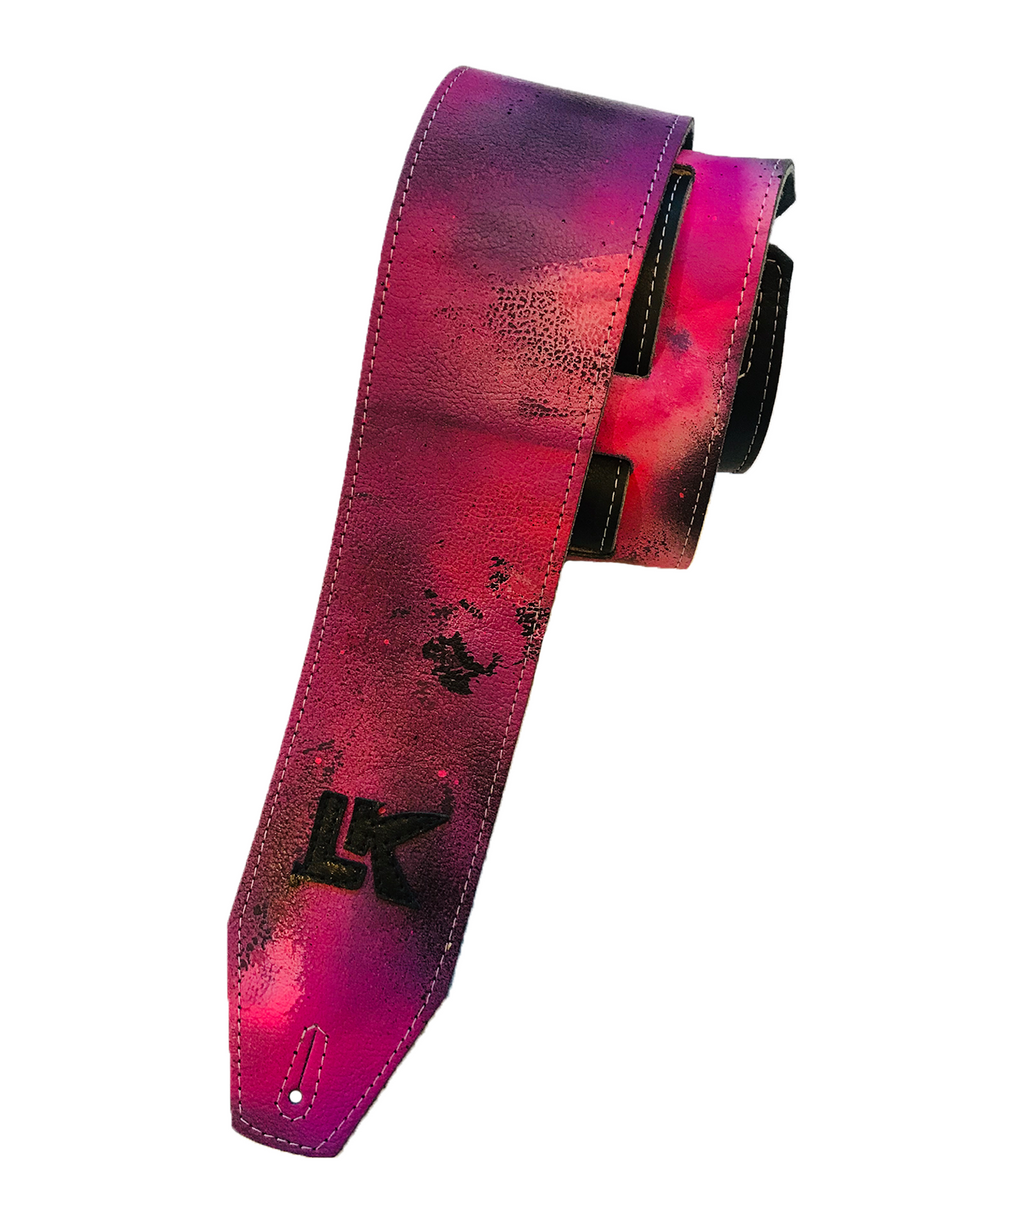 LK Pinkish Love Spray Paint Strap